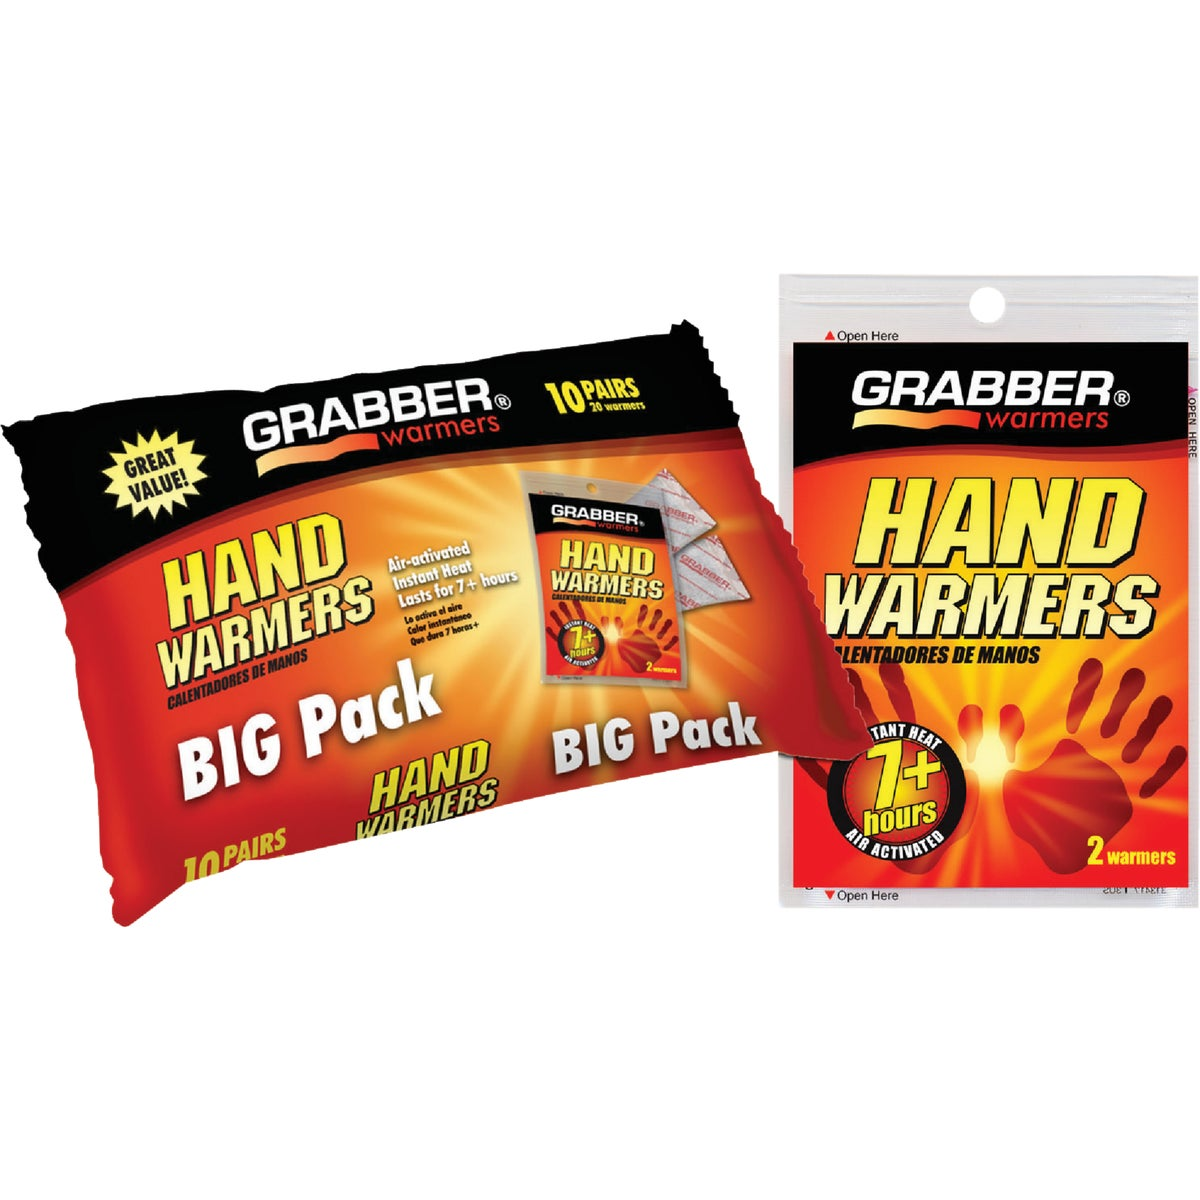 10PK HAND WARMERS - HWPP10 by Grabber Performance